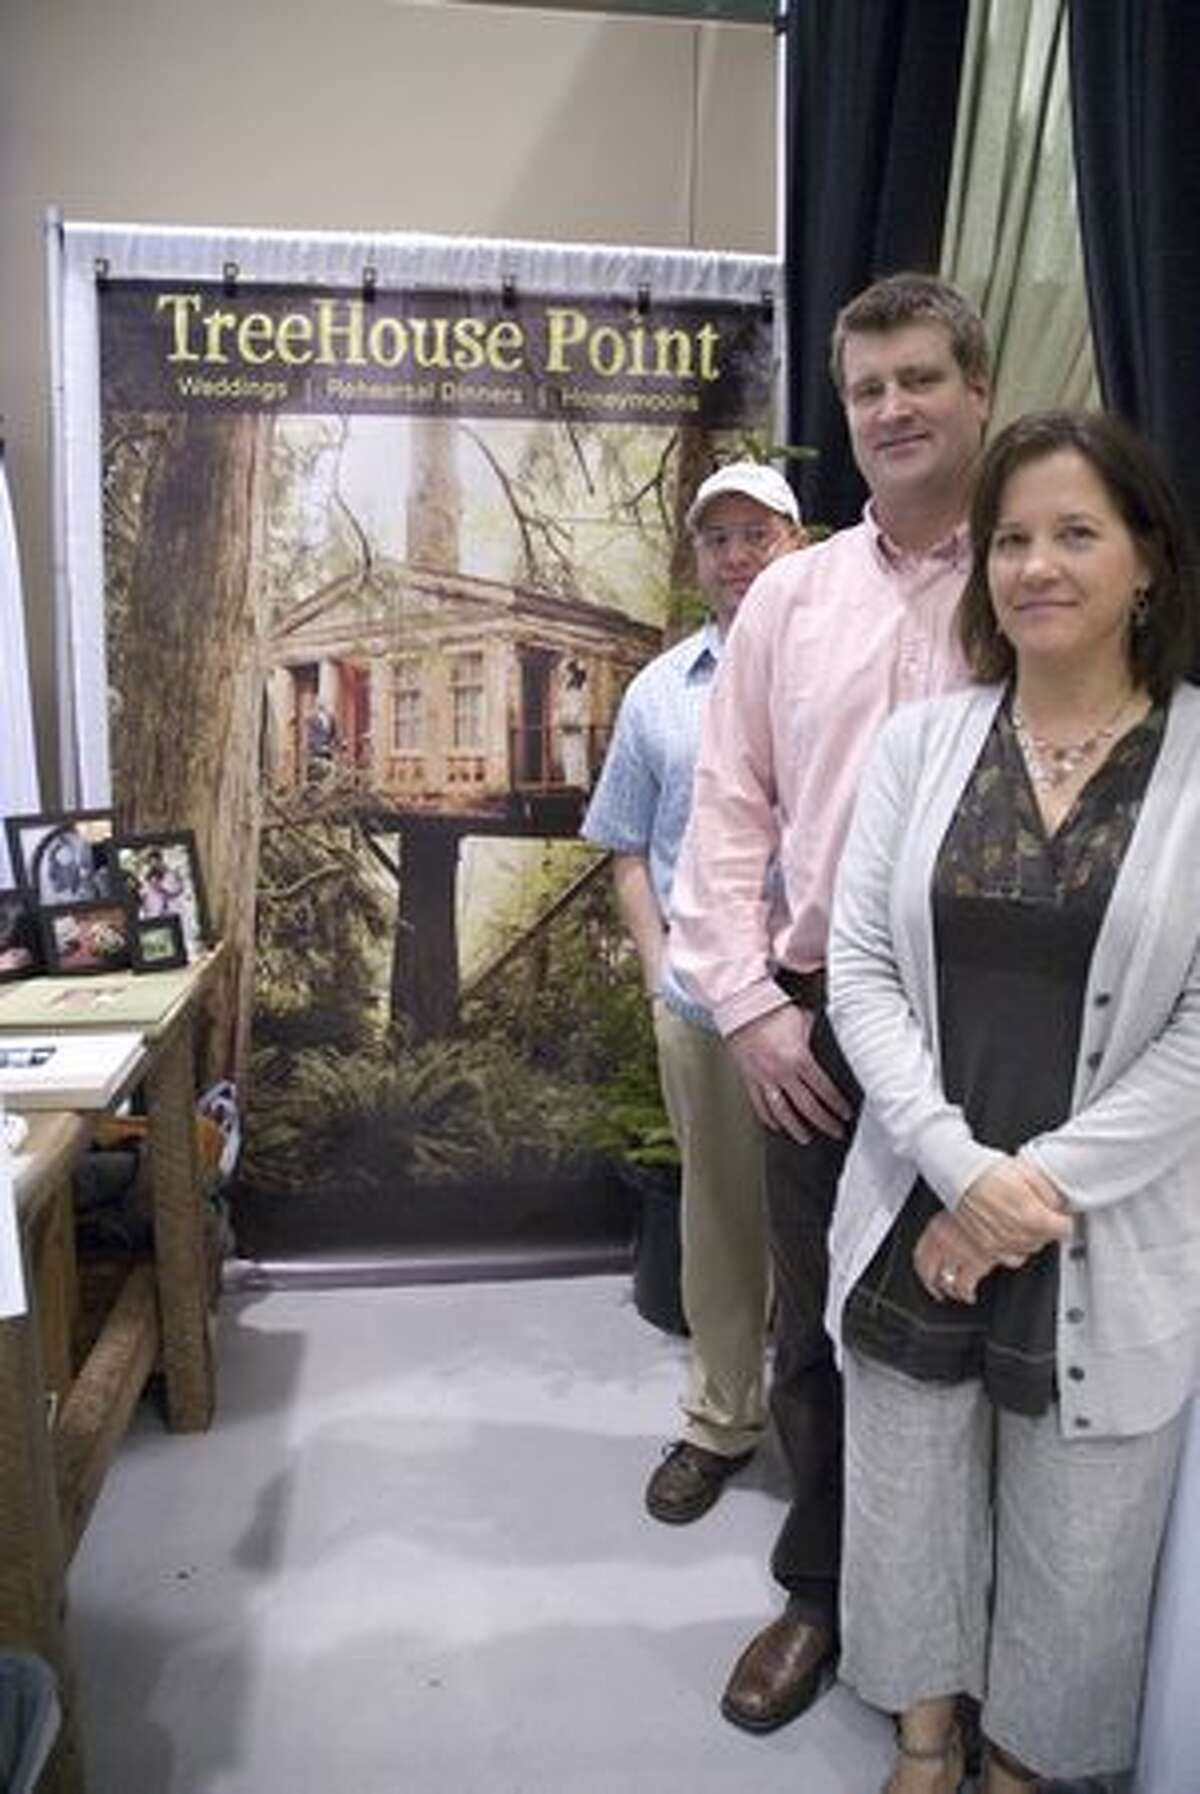 Pete Nelson and Judy Nelson (right) stand in front of their booth for Treehouse Point, an events facility that can hold ceremonies in treetops. The 20th annual Seattle Wedding Show took place at the Washington State Convention and Trade Center Jan. 16-17. Read about the 5 coolest booths at the show here. (Rebecca Livingston/seattlepi.com)